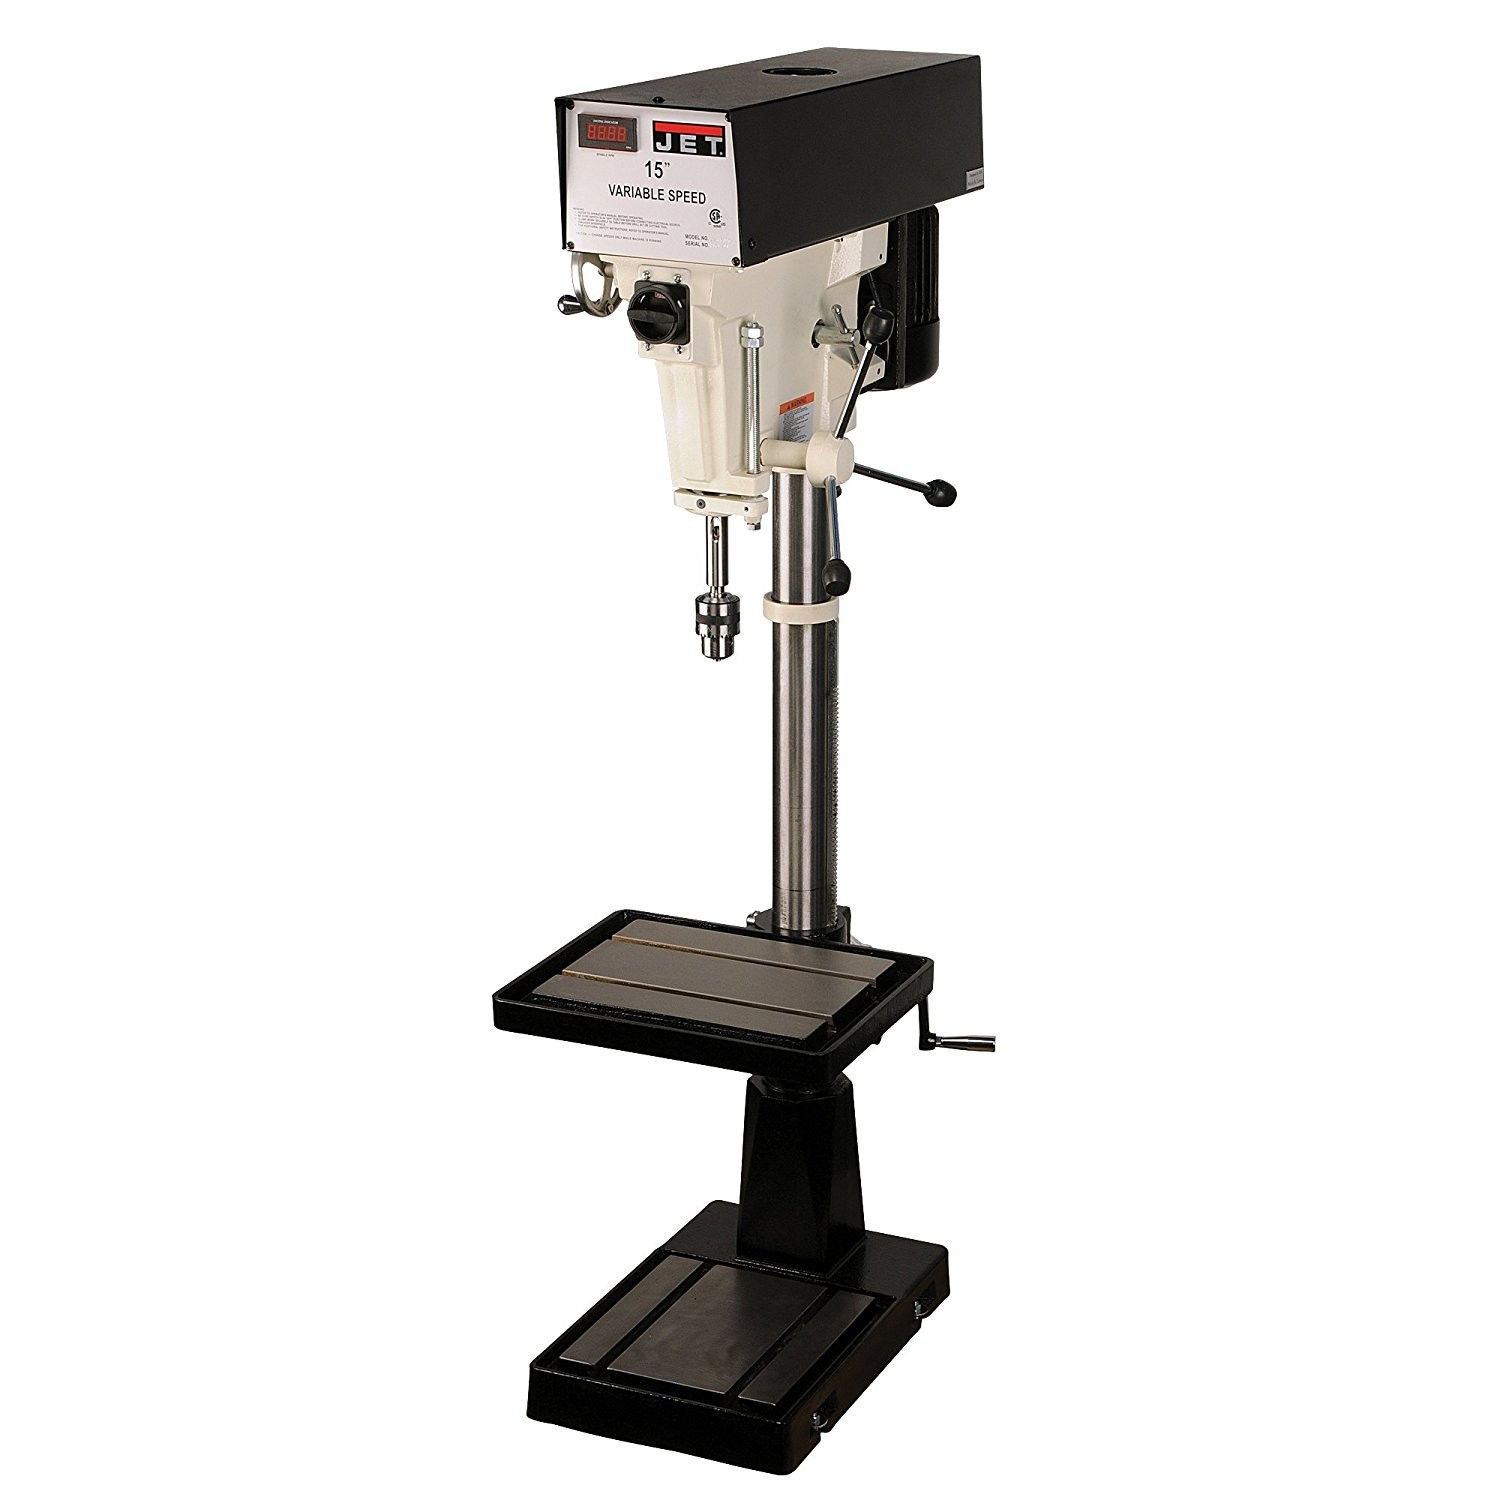 JET J-A5816 15-Inch 1-Horsepower 115/230-Volt Single Phase Variable Speed Floor Drill Press